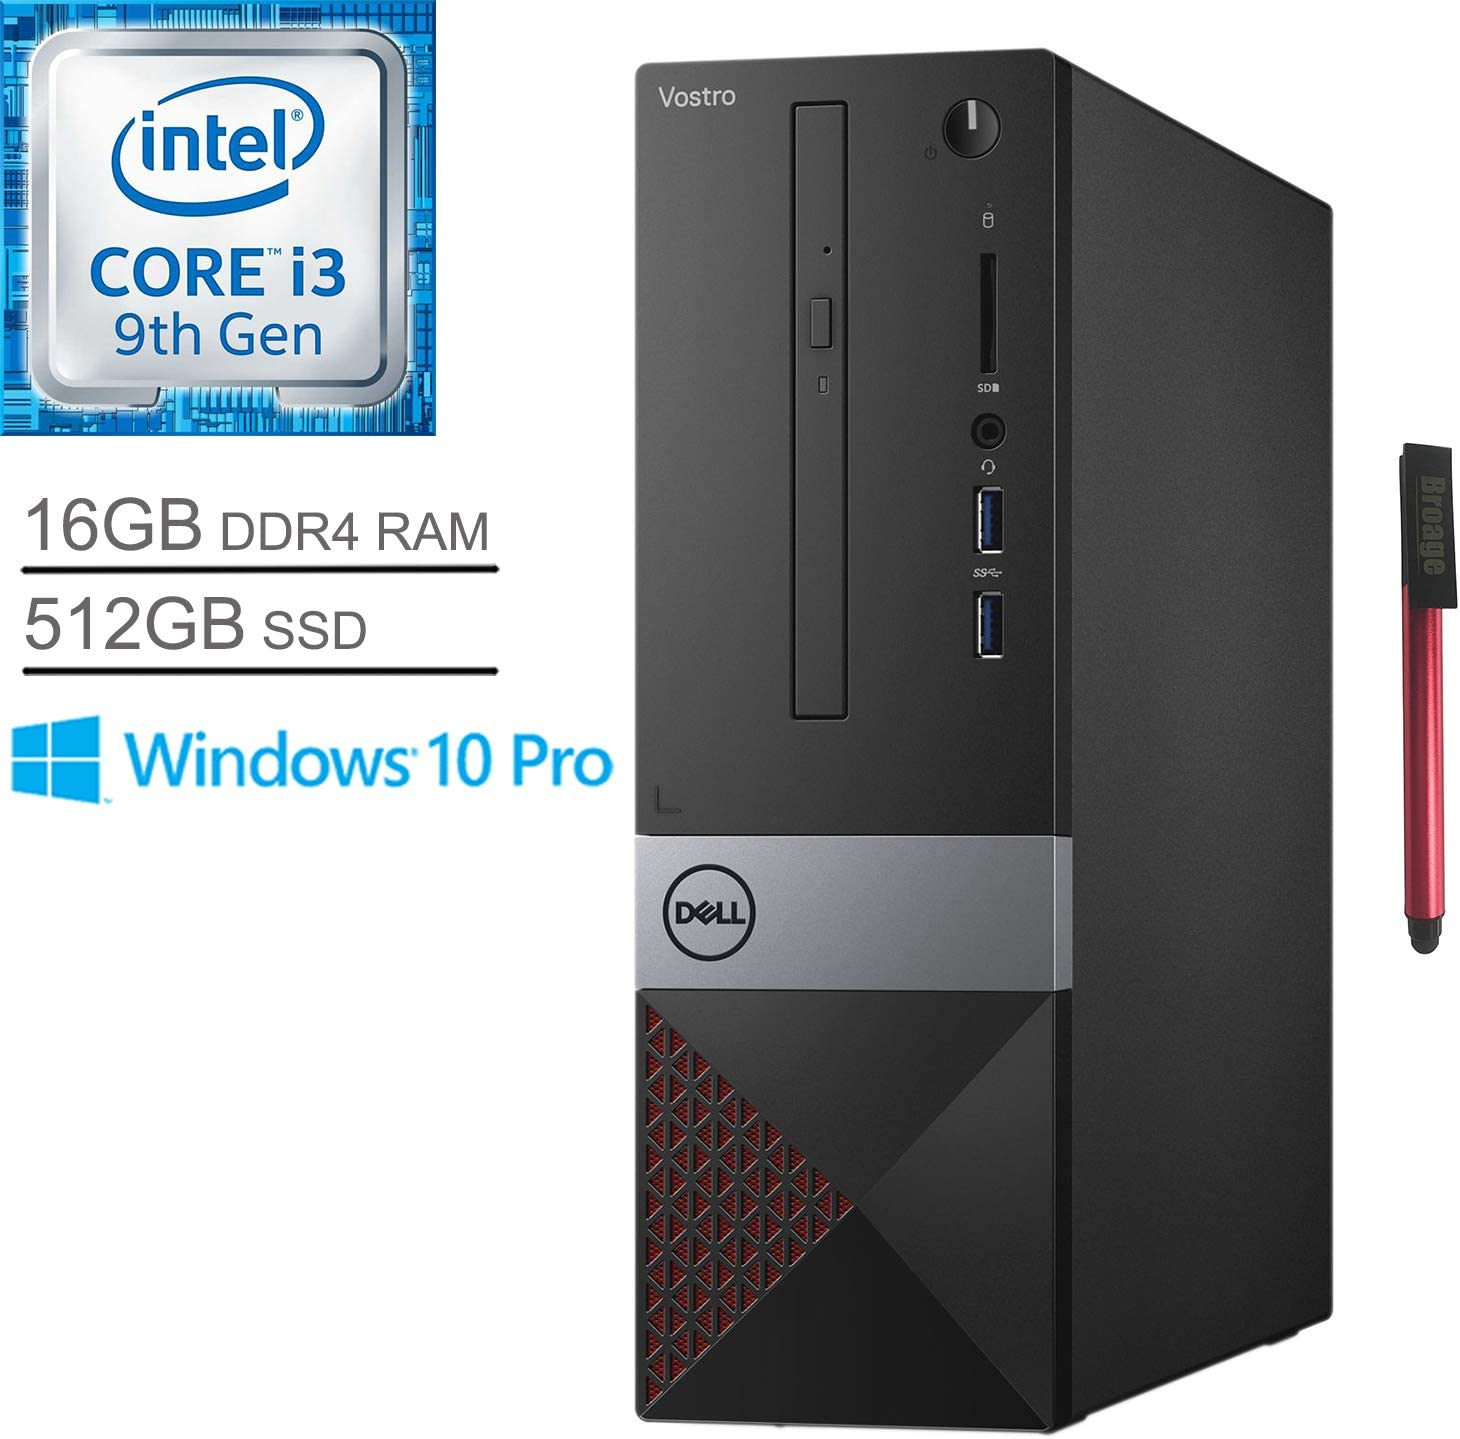 Dell Vostro 3471 Business Small Desktop Computer, Intel Quad-Core i3 9100 Up to 4.2GHz (Beats i5-7400), 16GB DDR4 RAM, 512GB SSD, DVDRW, WiFi, Bluetooth, HDMI, Windows 10 Pro, BROAGE 64GB Flash Stylus